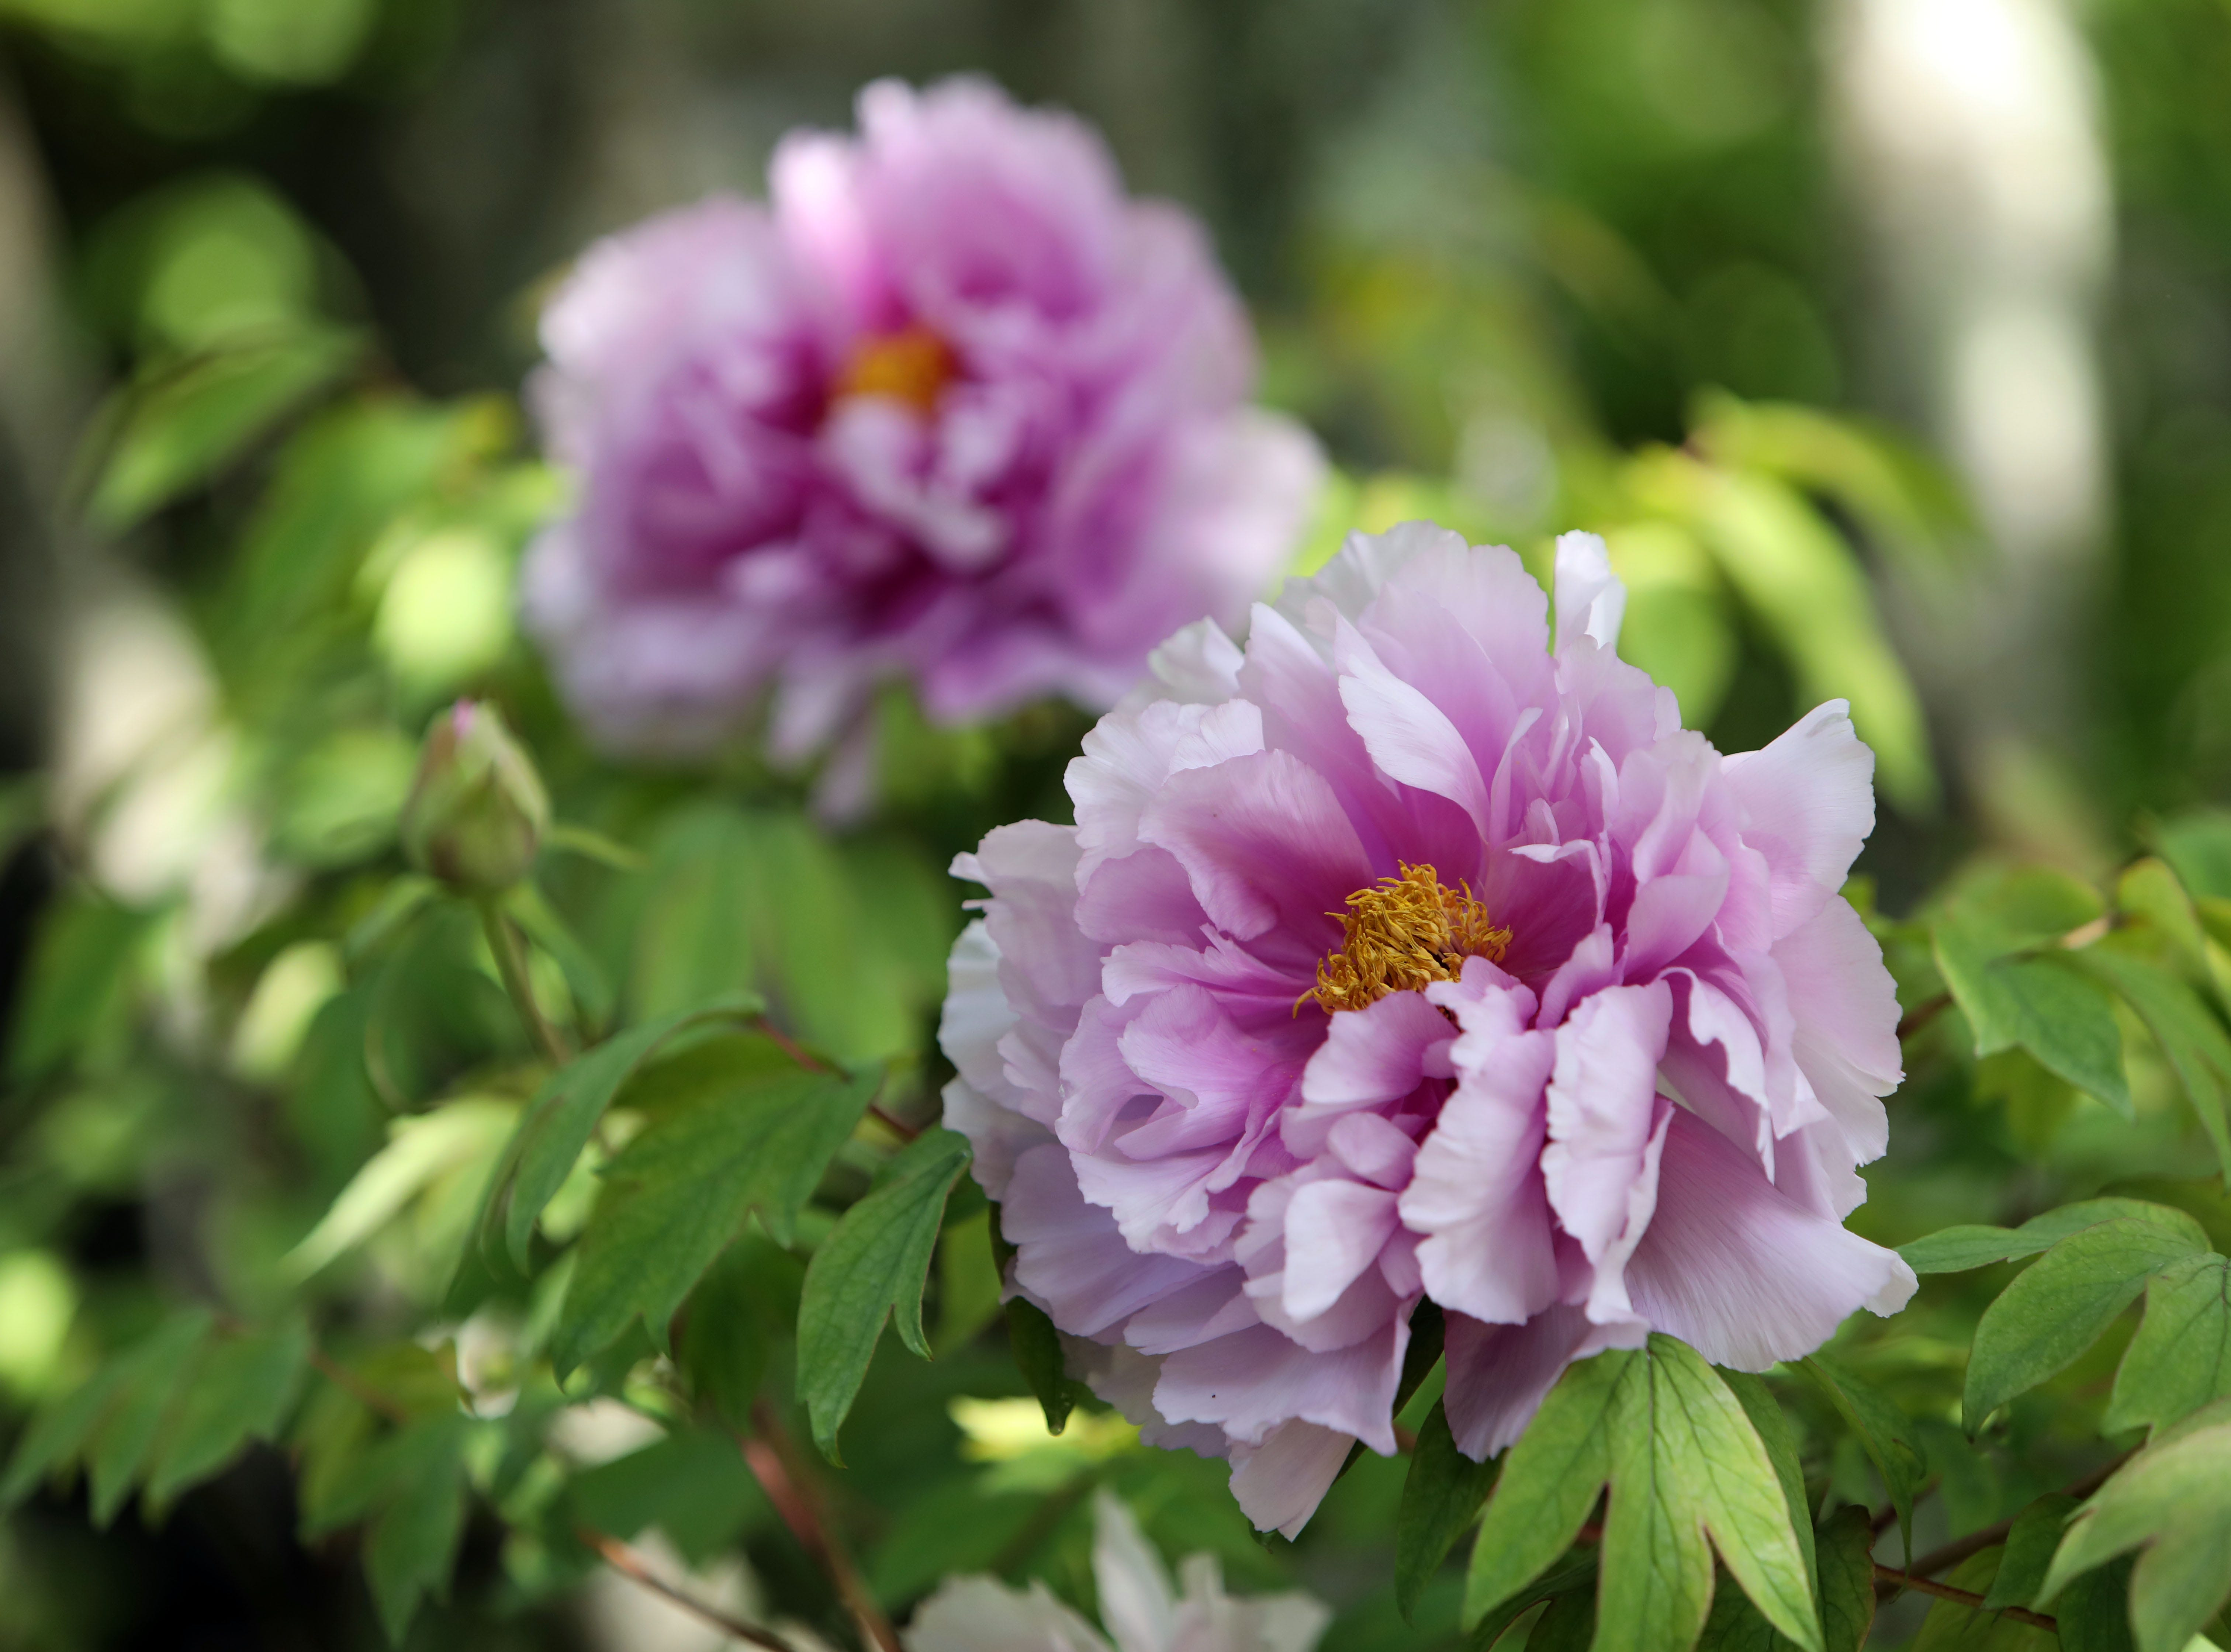 Peonies in full bloom, for about one more week, at Rockefeller State Park Preserve in Pleasantville May 15, 2019. The 500 tree plants were a gift from Yatsuka Cho, a small town in Japan, to the Friends of the Rockefeller State Park Preserve to help unite the two countries after September 11.